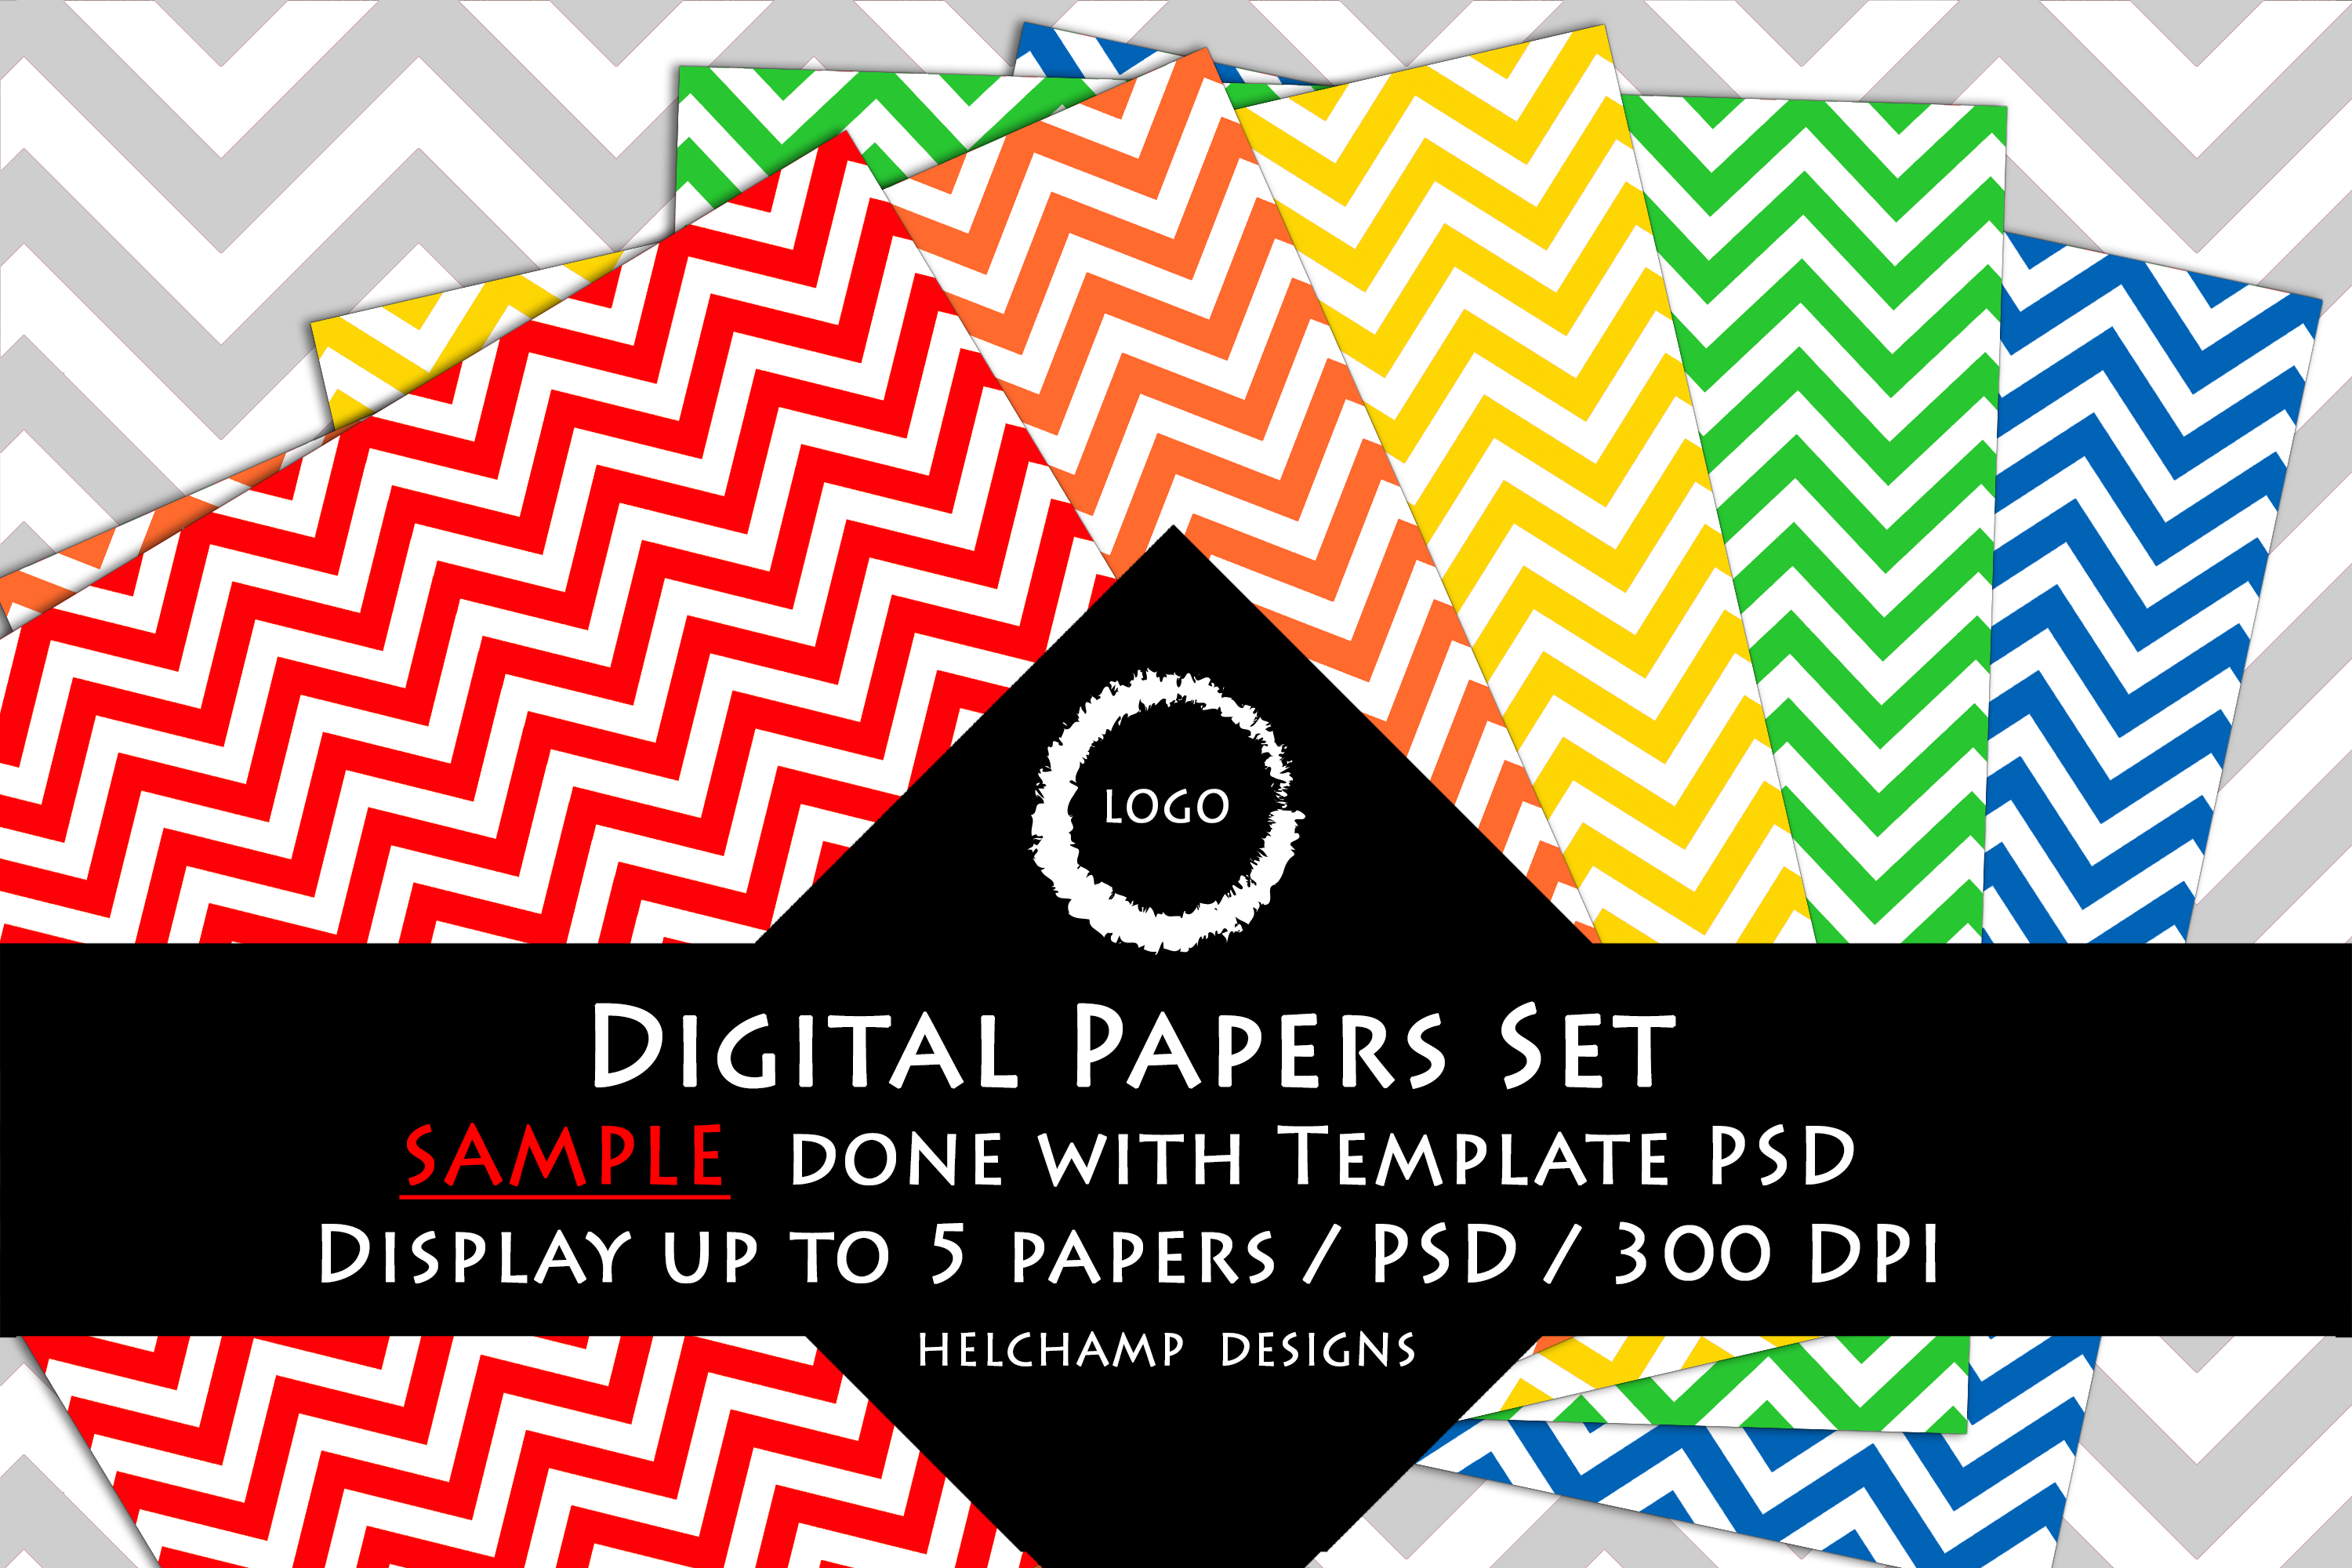 5 Panels Mockup for Digital Papers - M06 example image 4